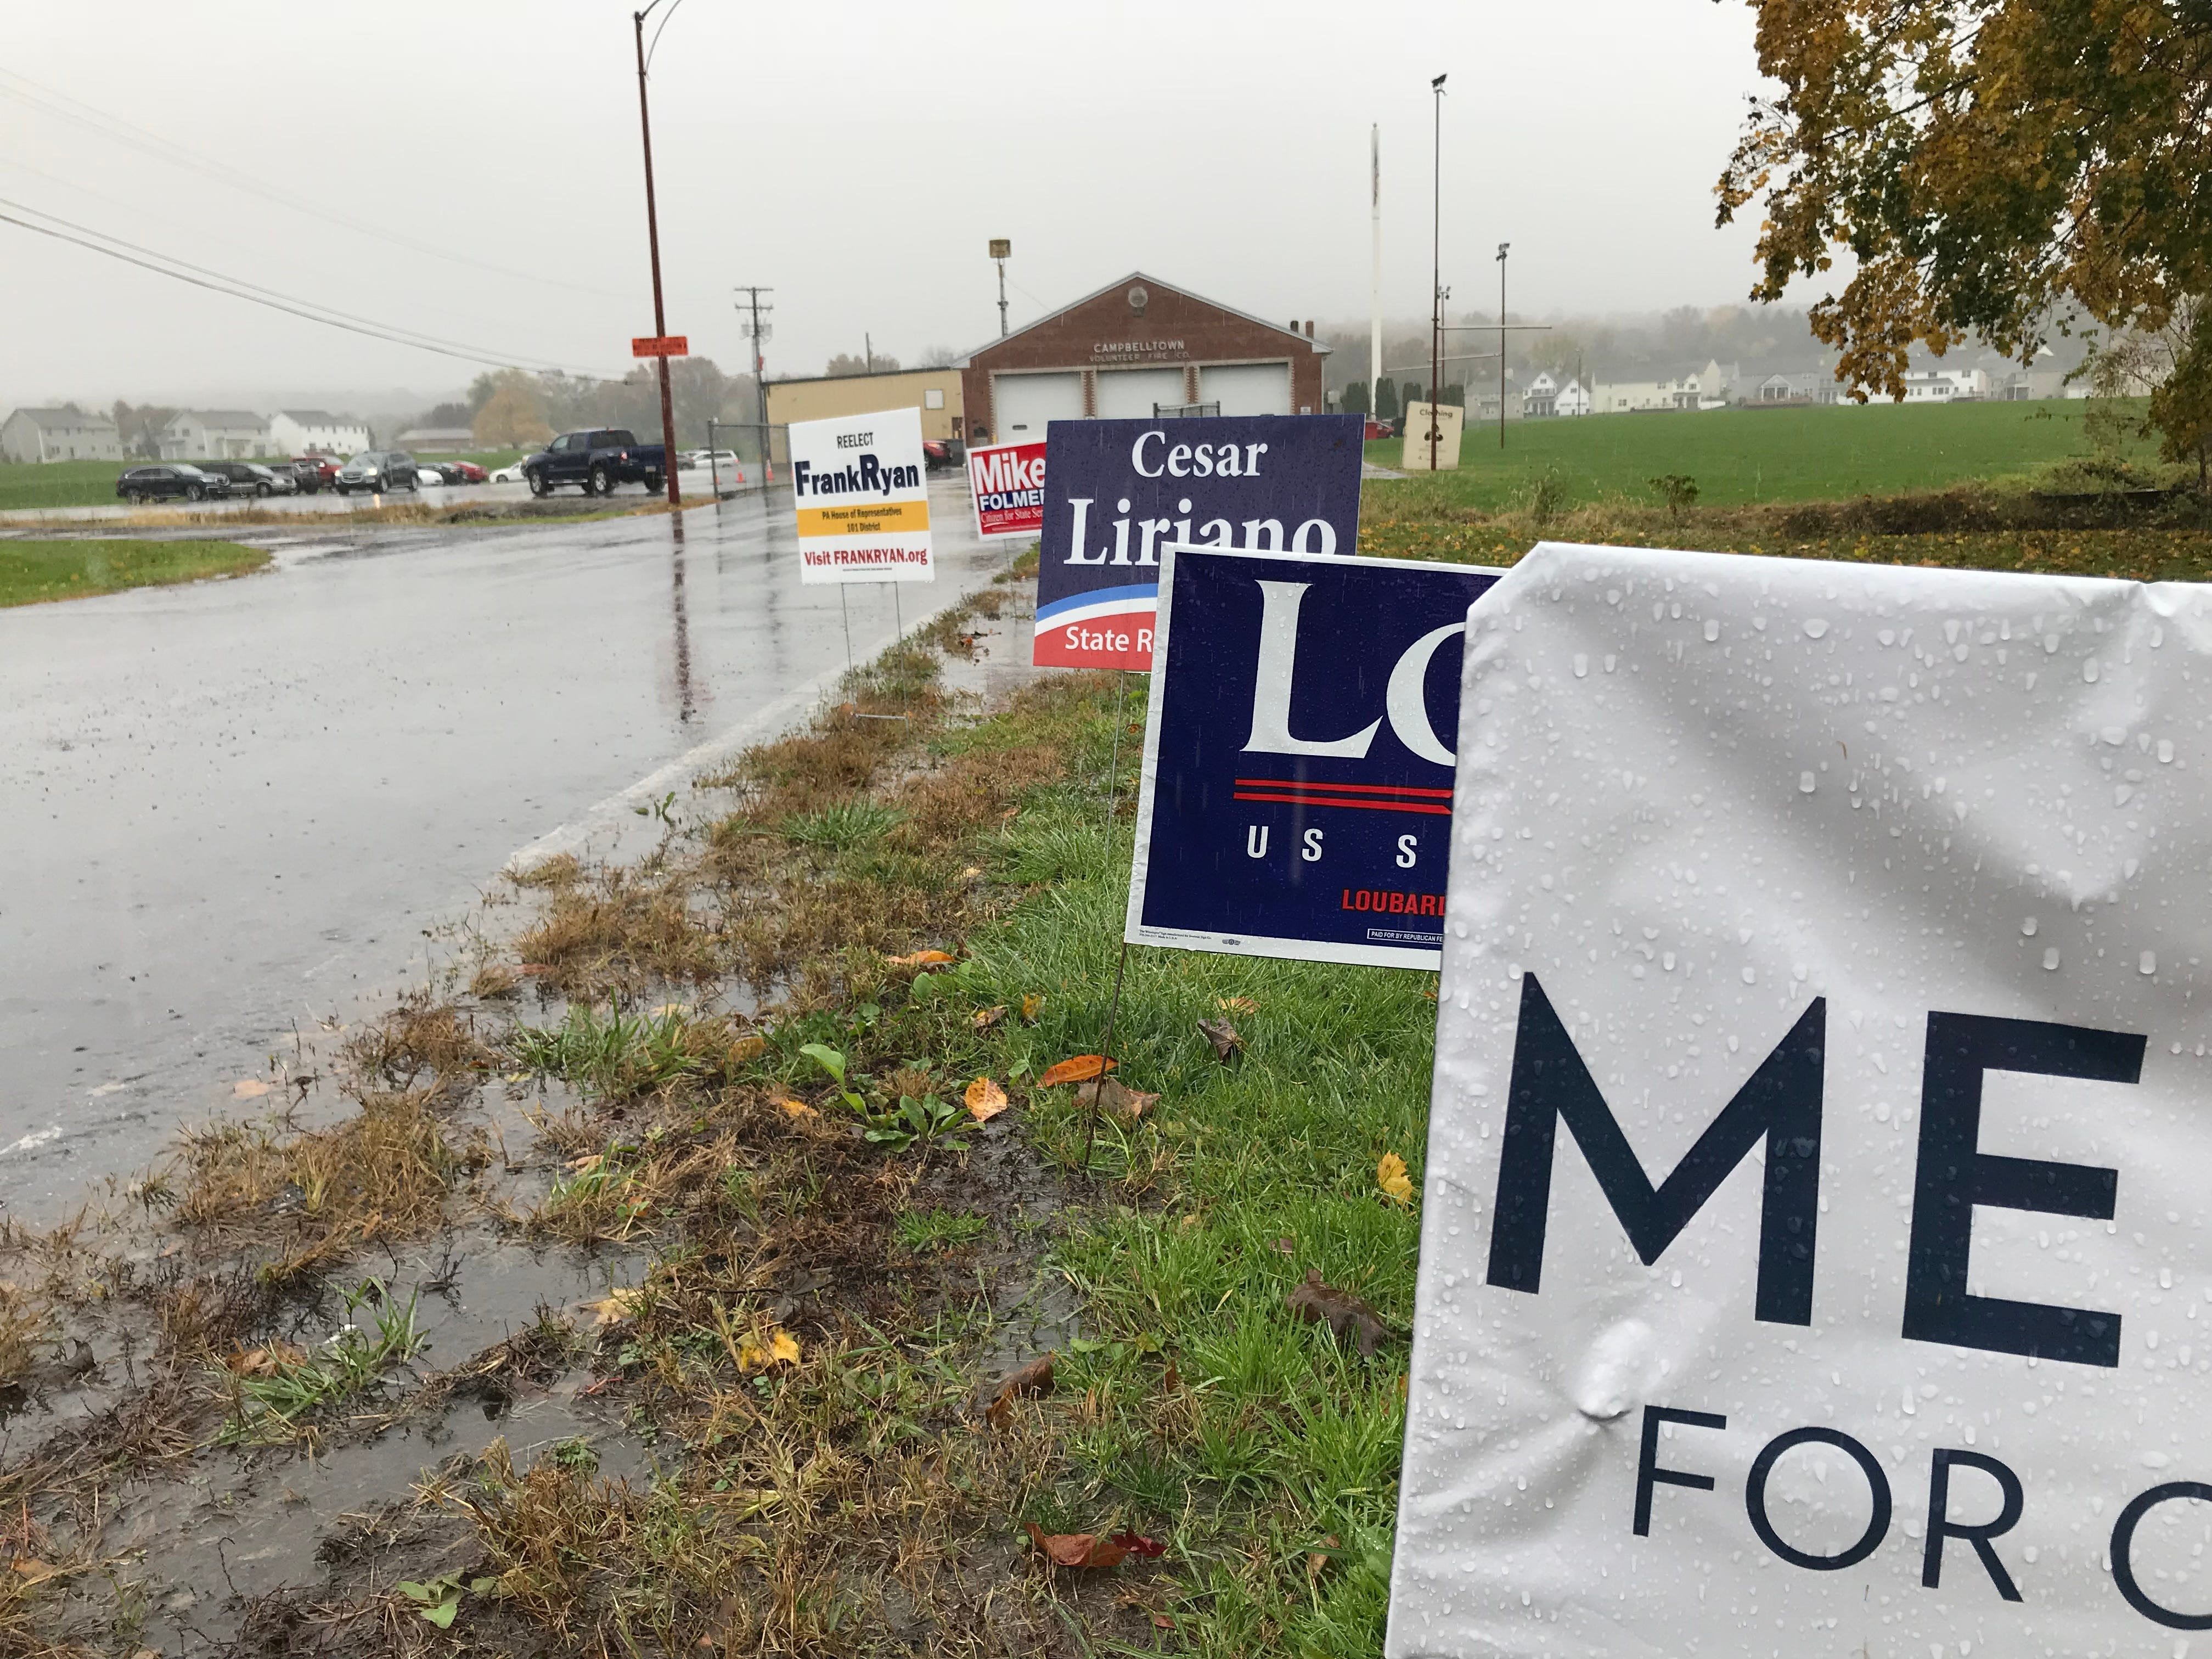 Campaign signs along the driveway at the Campbelltown Fire Company social hall located at 2818 Horseshoe Pike, during the midterm elections Nov. 6, 2018.